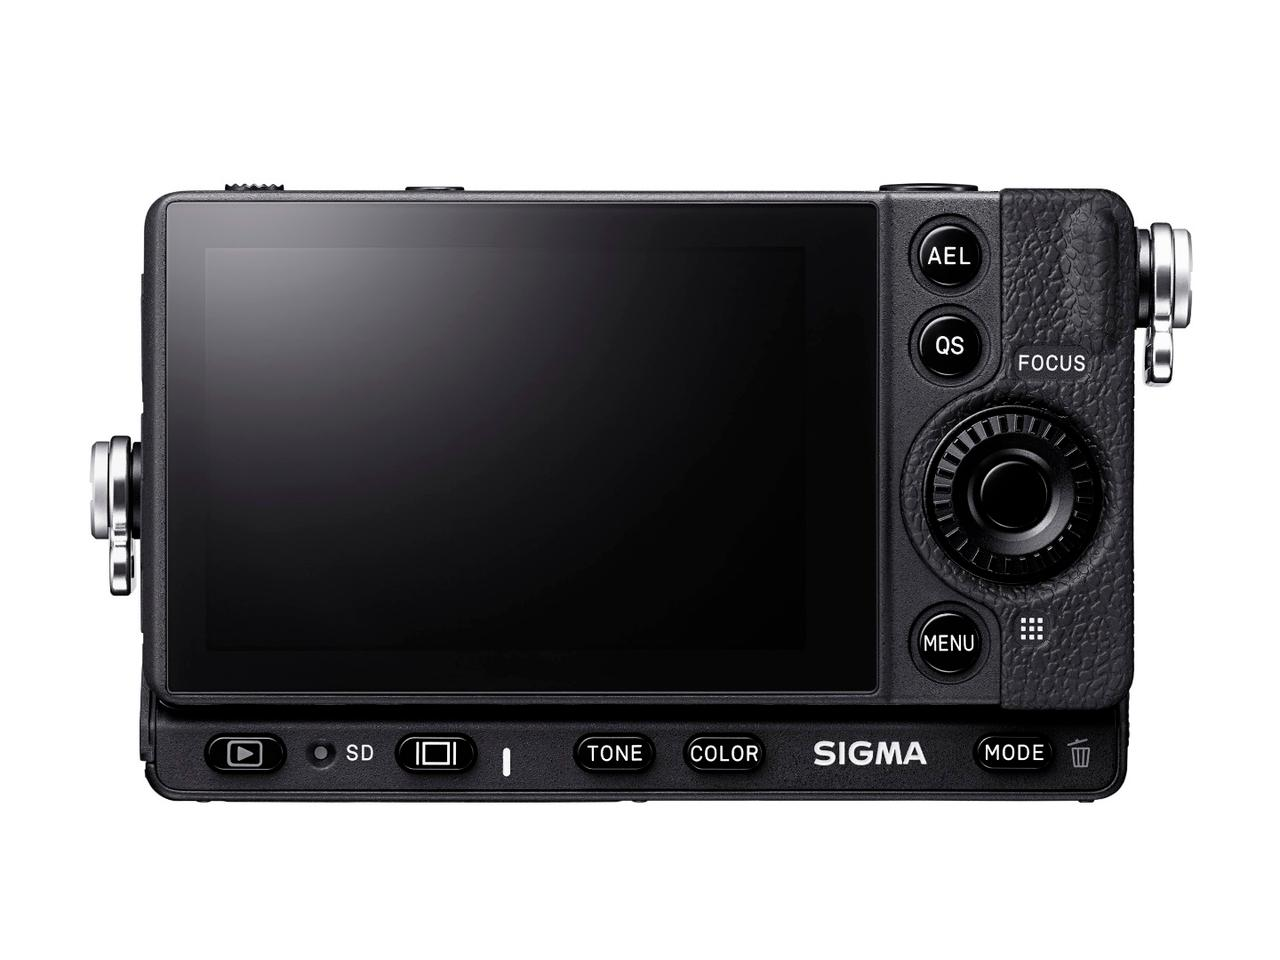 The Sigma fp has a dust-proof and splash-proof body